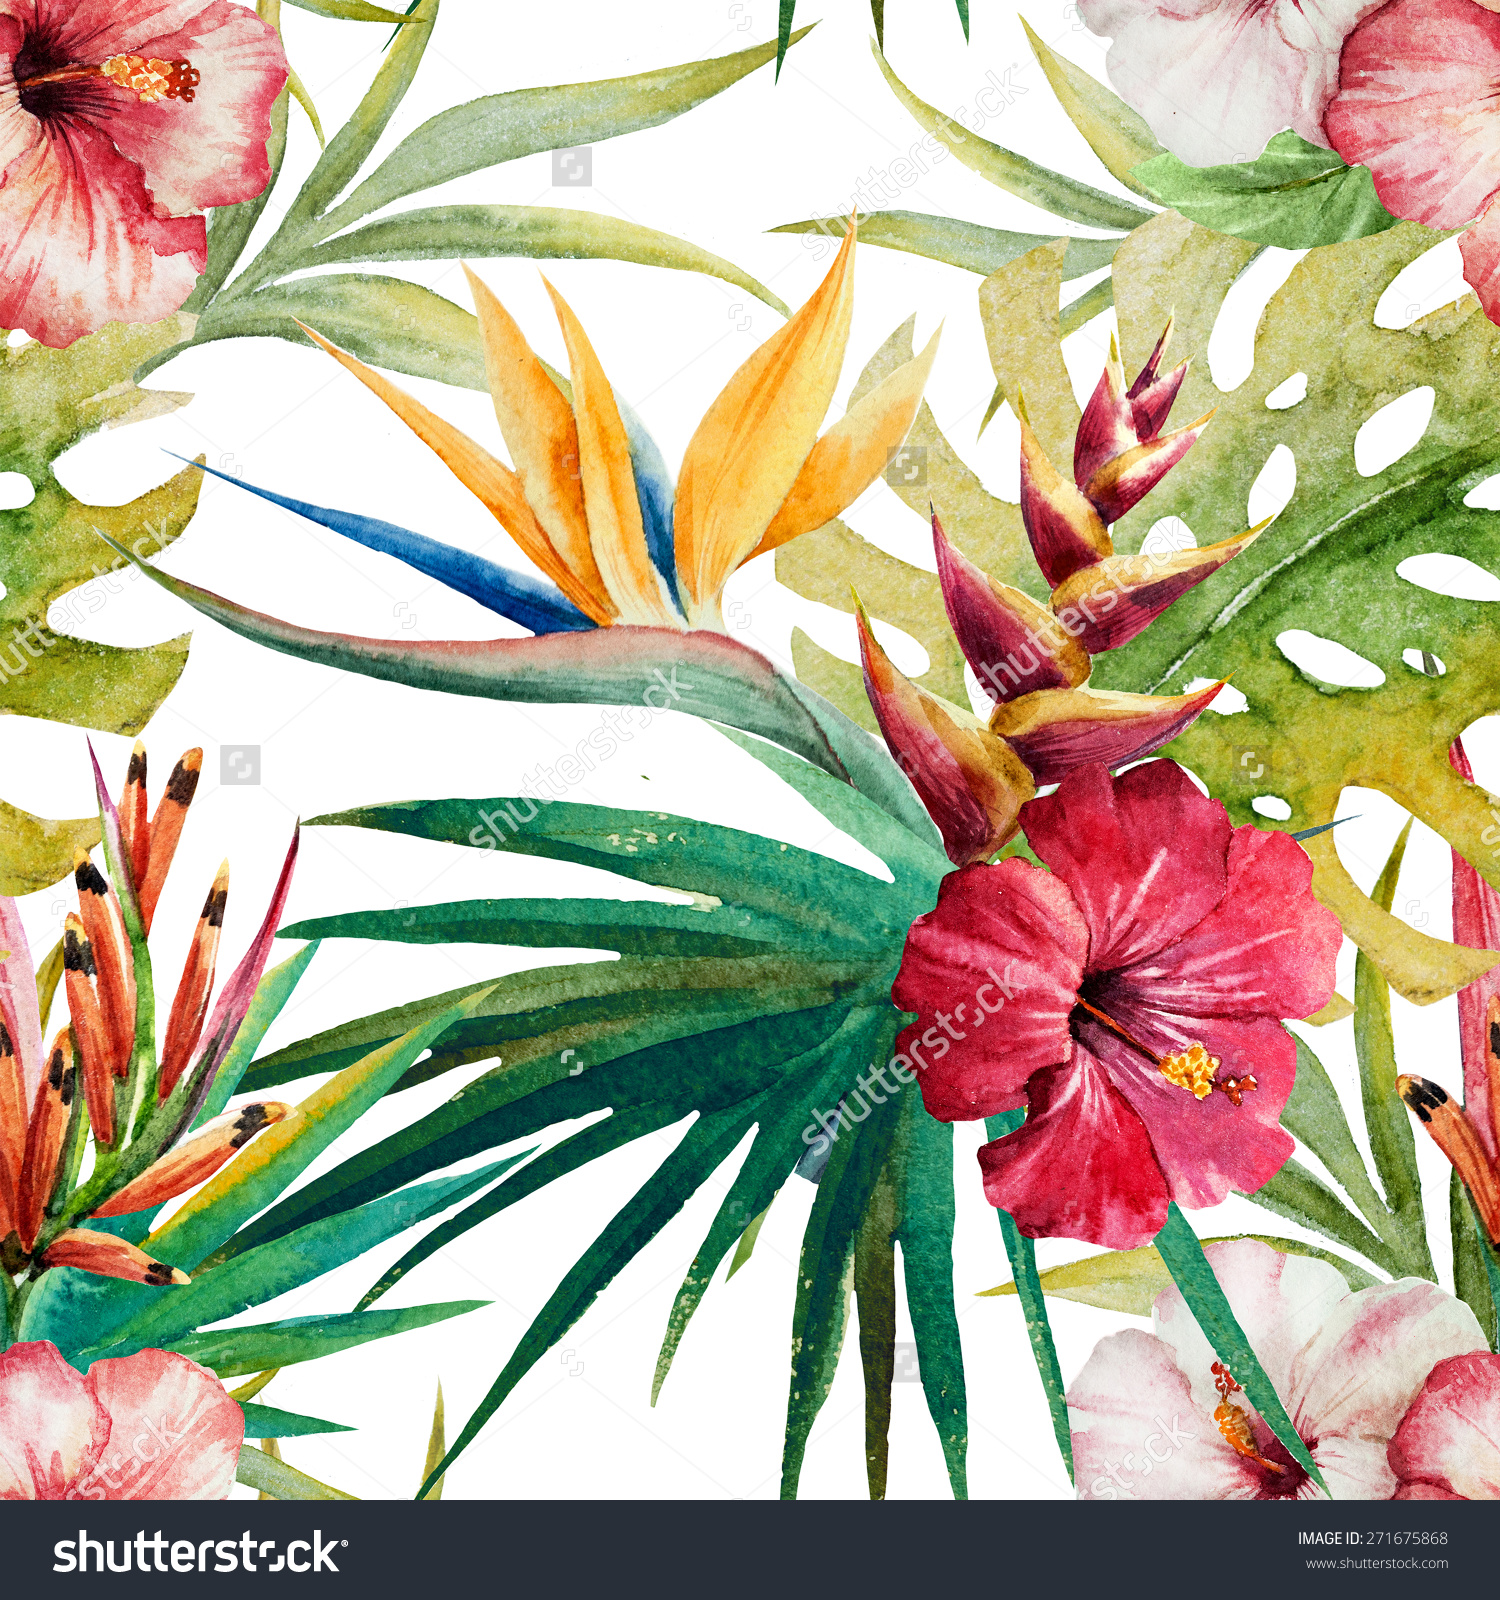 Watercolor Plant Leaves Orchid Flower Strelitzia Stock.